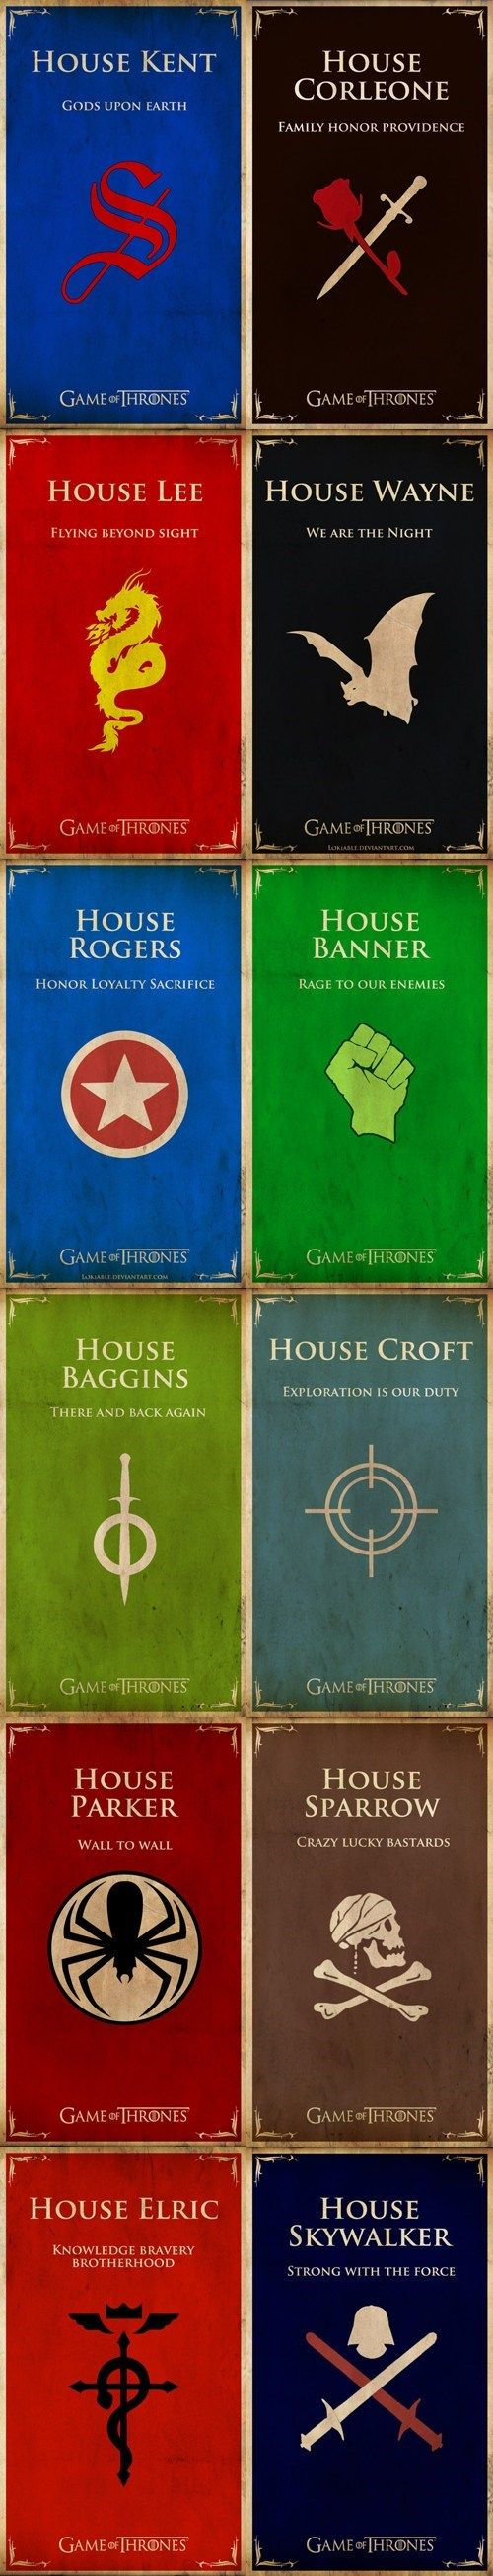 Pop Culture House Flags (go to source to see more)